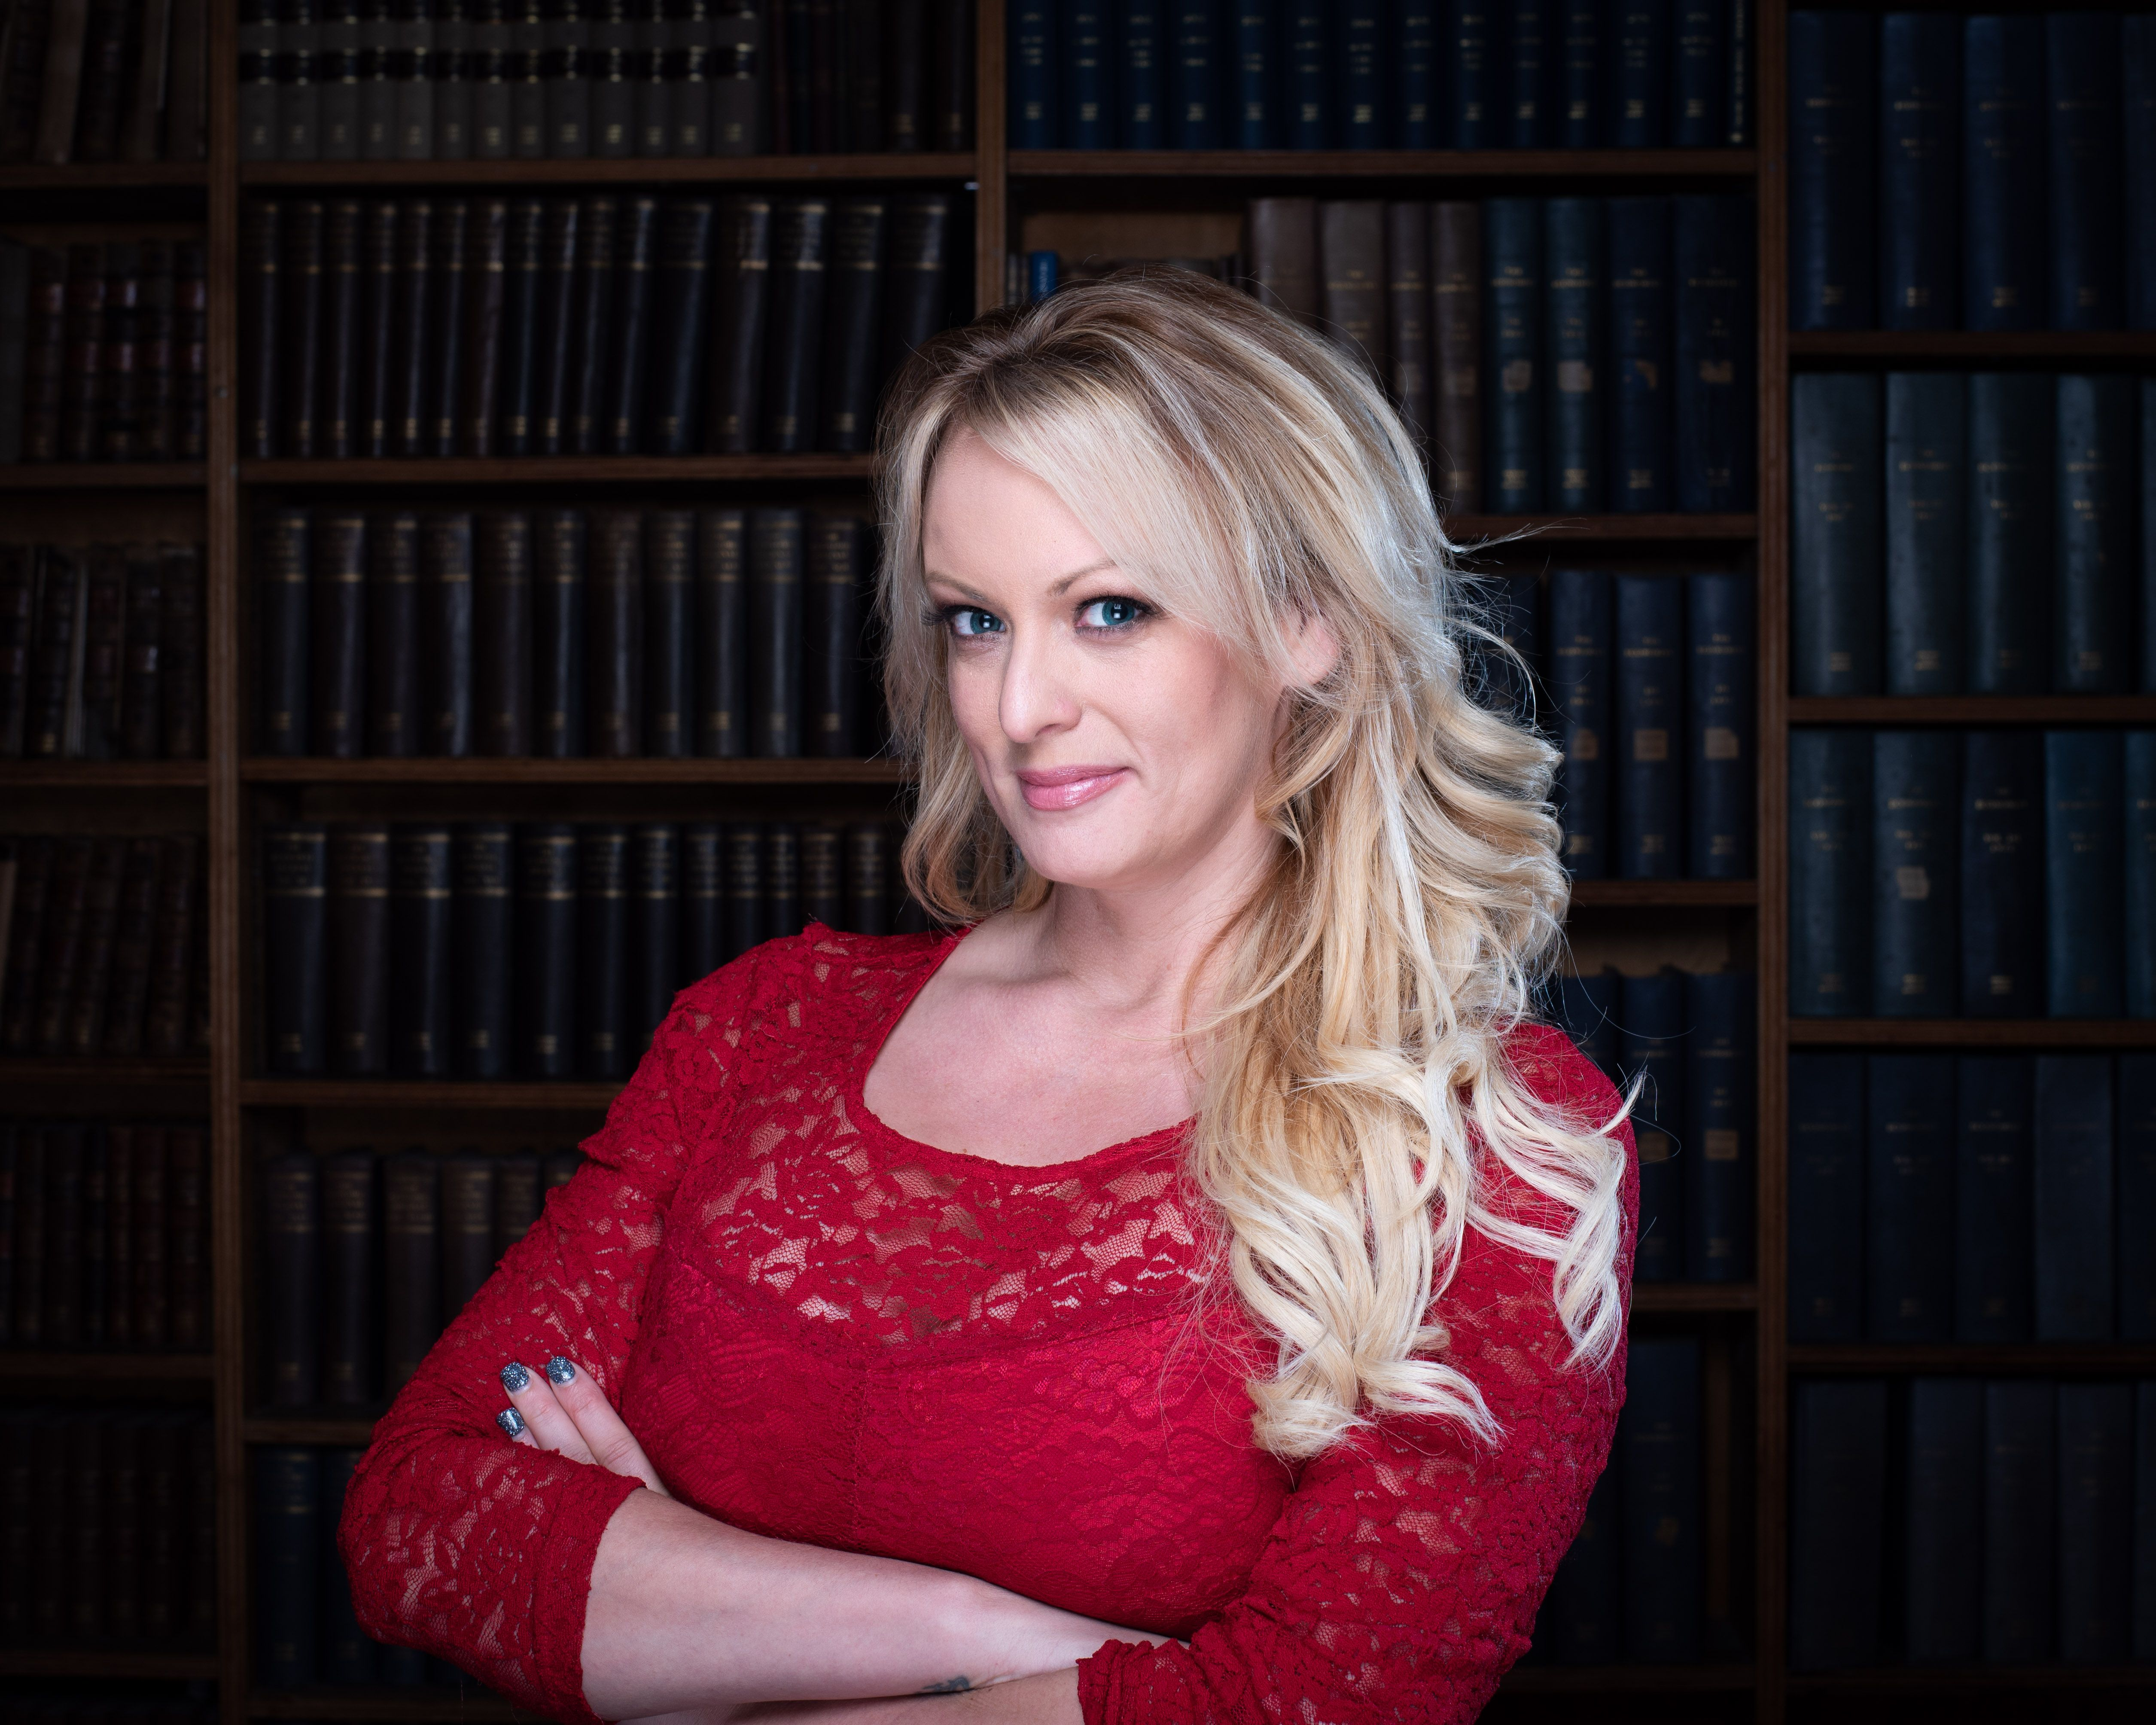 Stormy Daniels at Oxford Union, UK on Nov. 15, 2018. Michael Cohen test